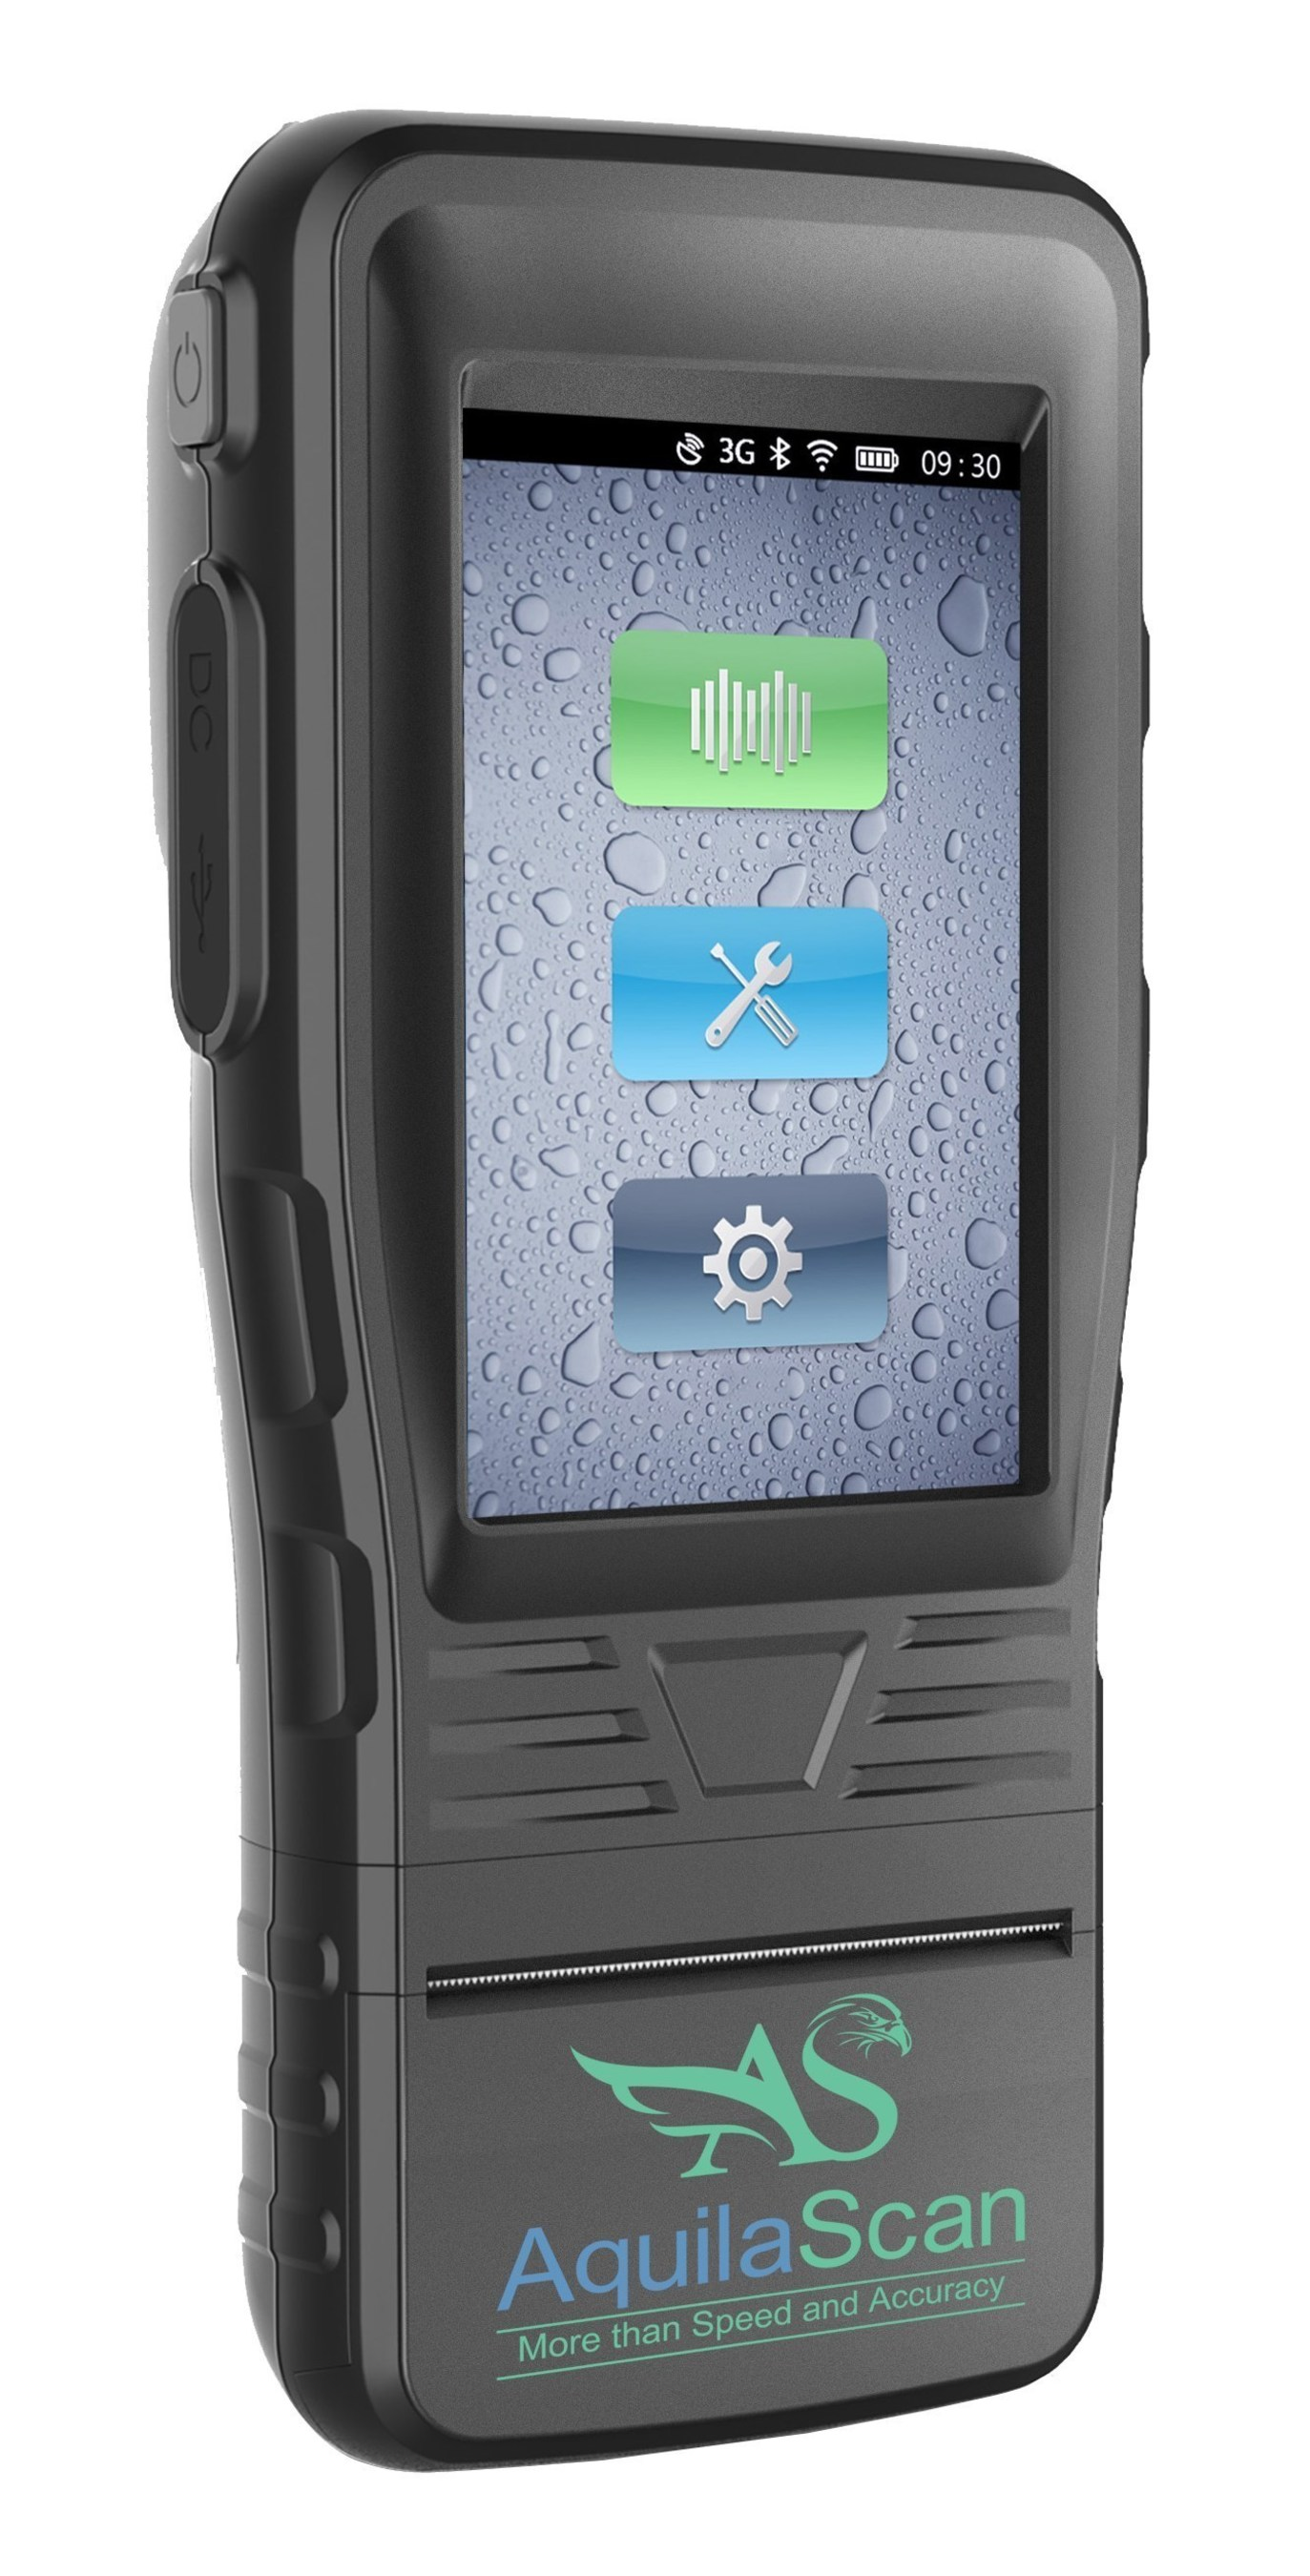 the newest android new handheld detection device for enforcement 22401